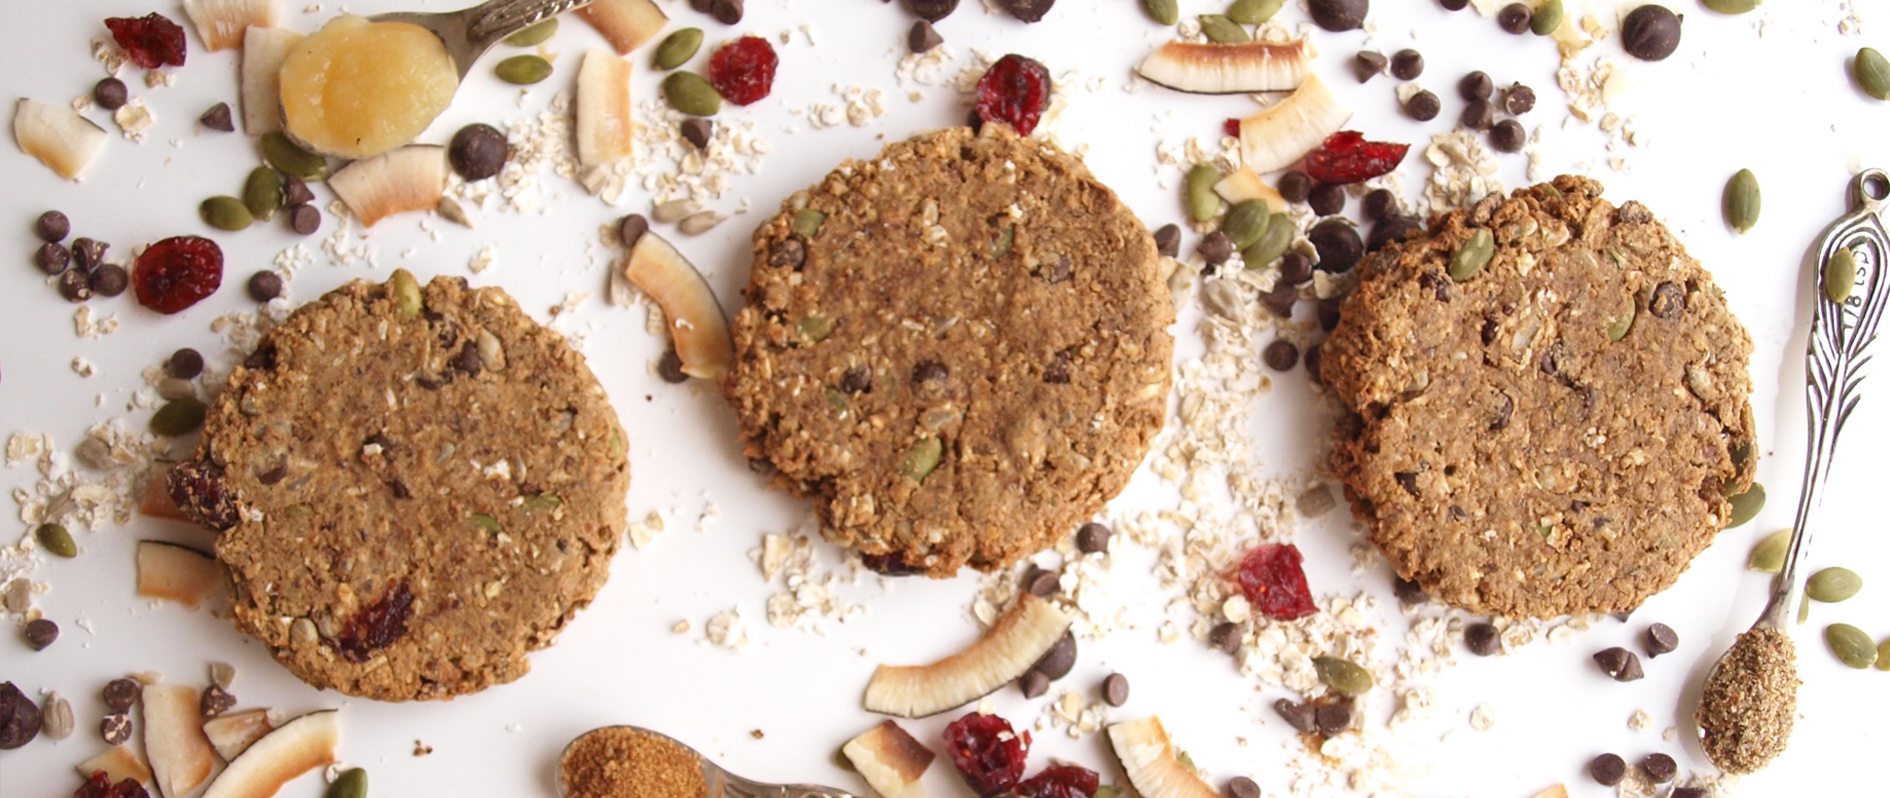 Fully Loaded Cookie- made of healthy ingredients. Delicious healthy dessert.